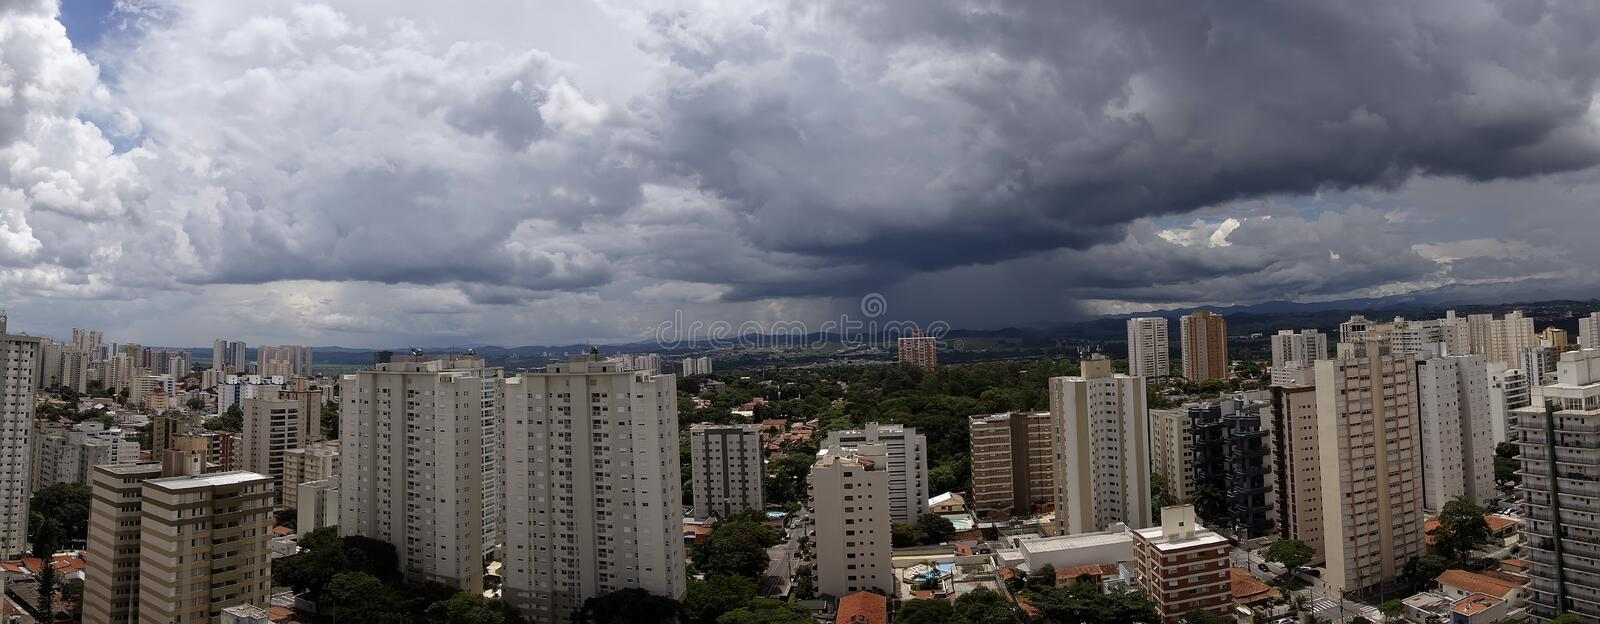 Panoramic photo of the city Sao Jose dos Campos - Sao Paulo, Brazil - with cloudy sky stock images